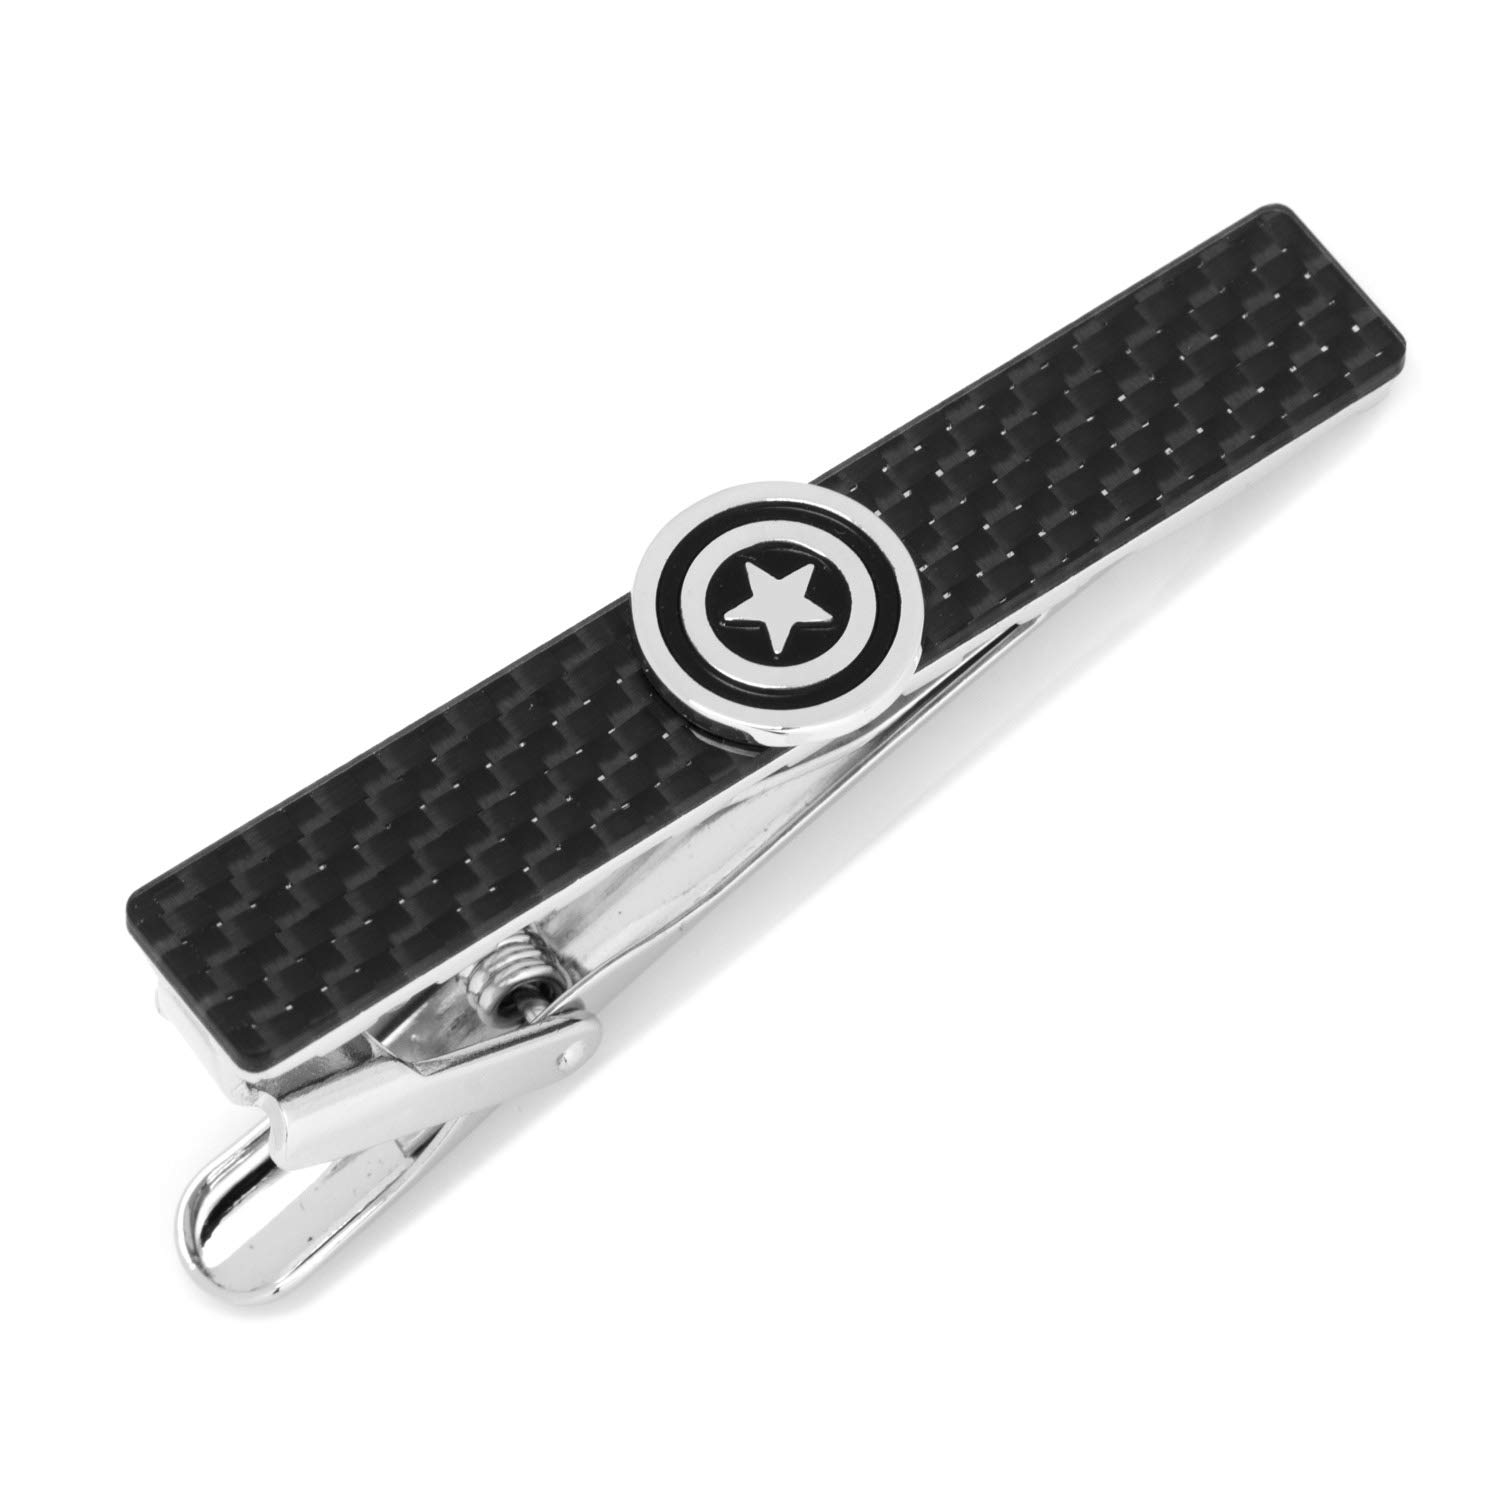 Marvel Captain America Carbon Fiber Tie Clip, Officially Licensed